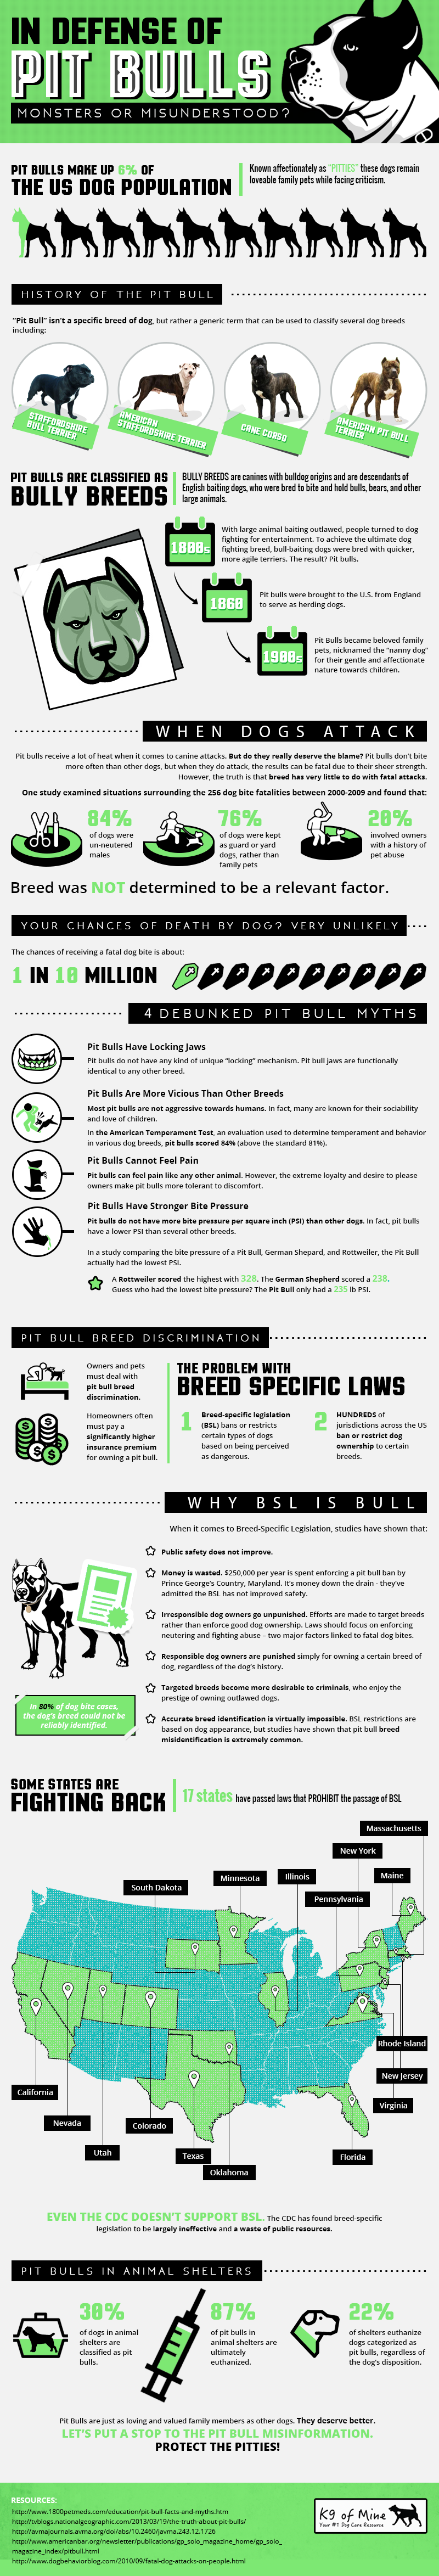 In Defense of Pit Bulls: Monsters or Misunderstood [Infographic]